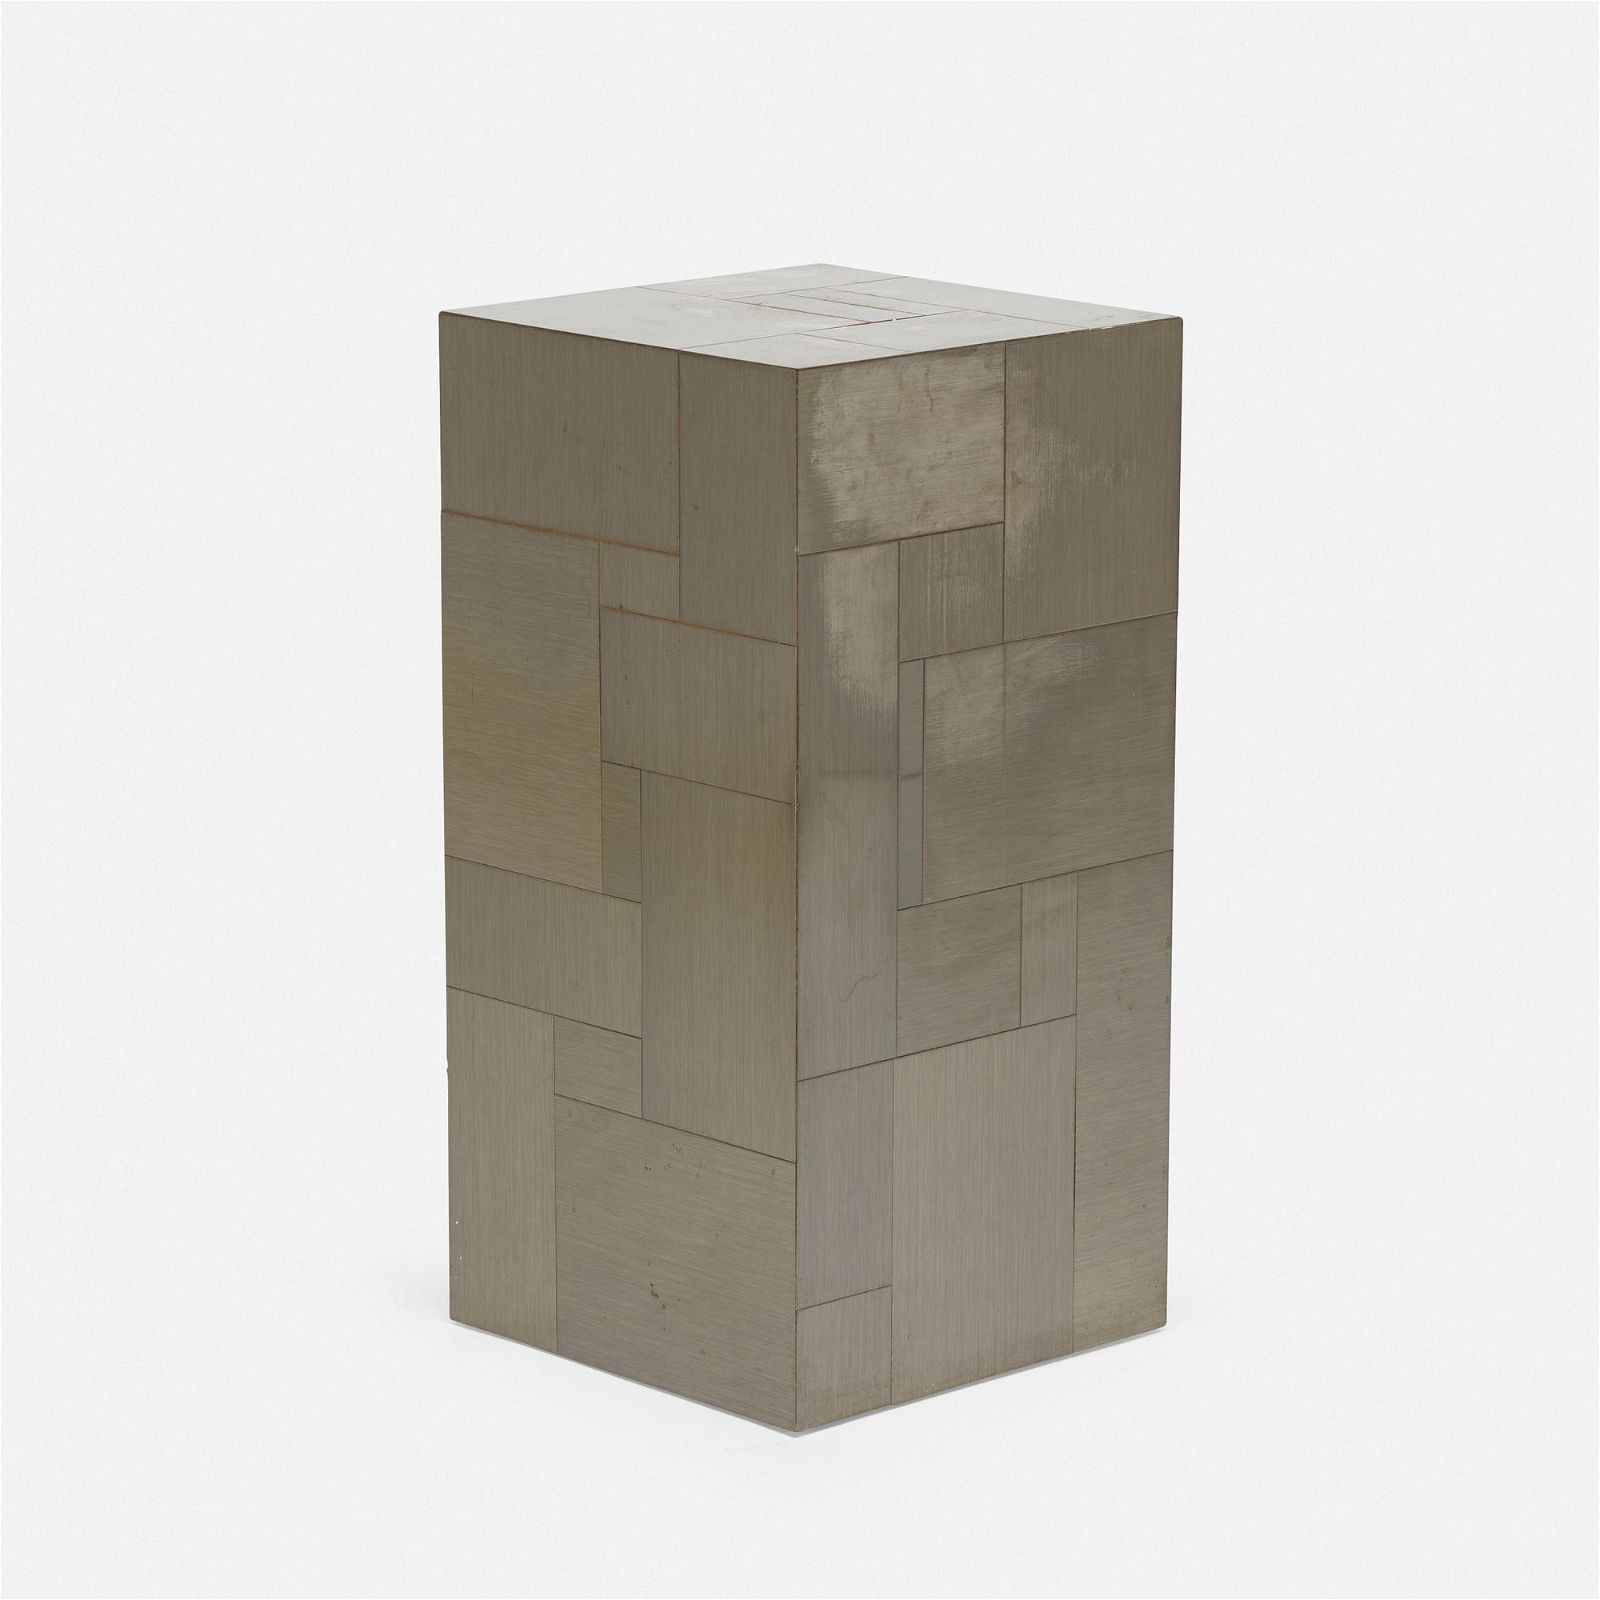 Paul Evans, Cityscape occasional table